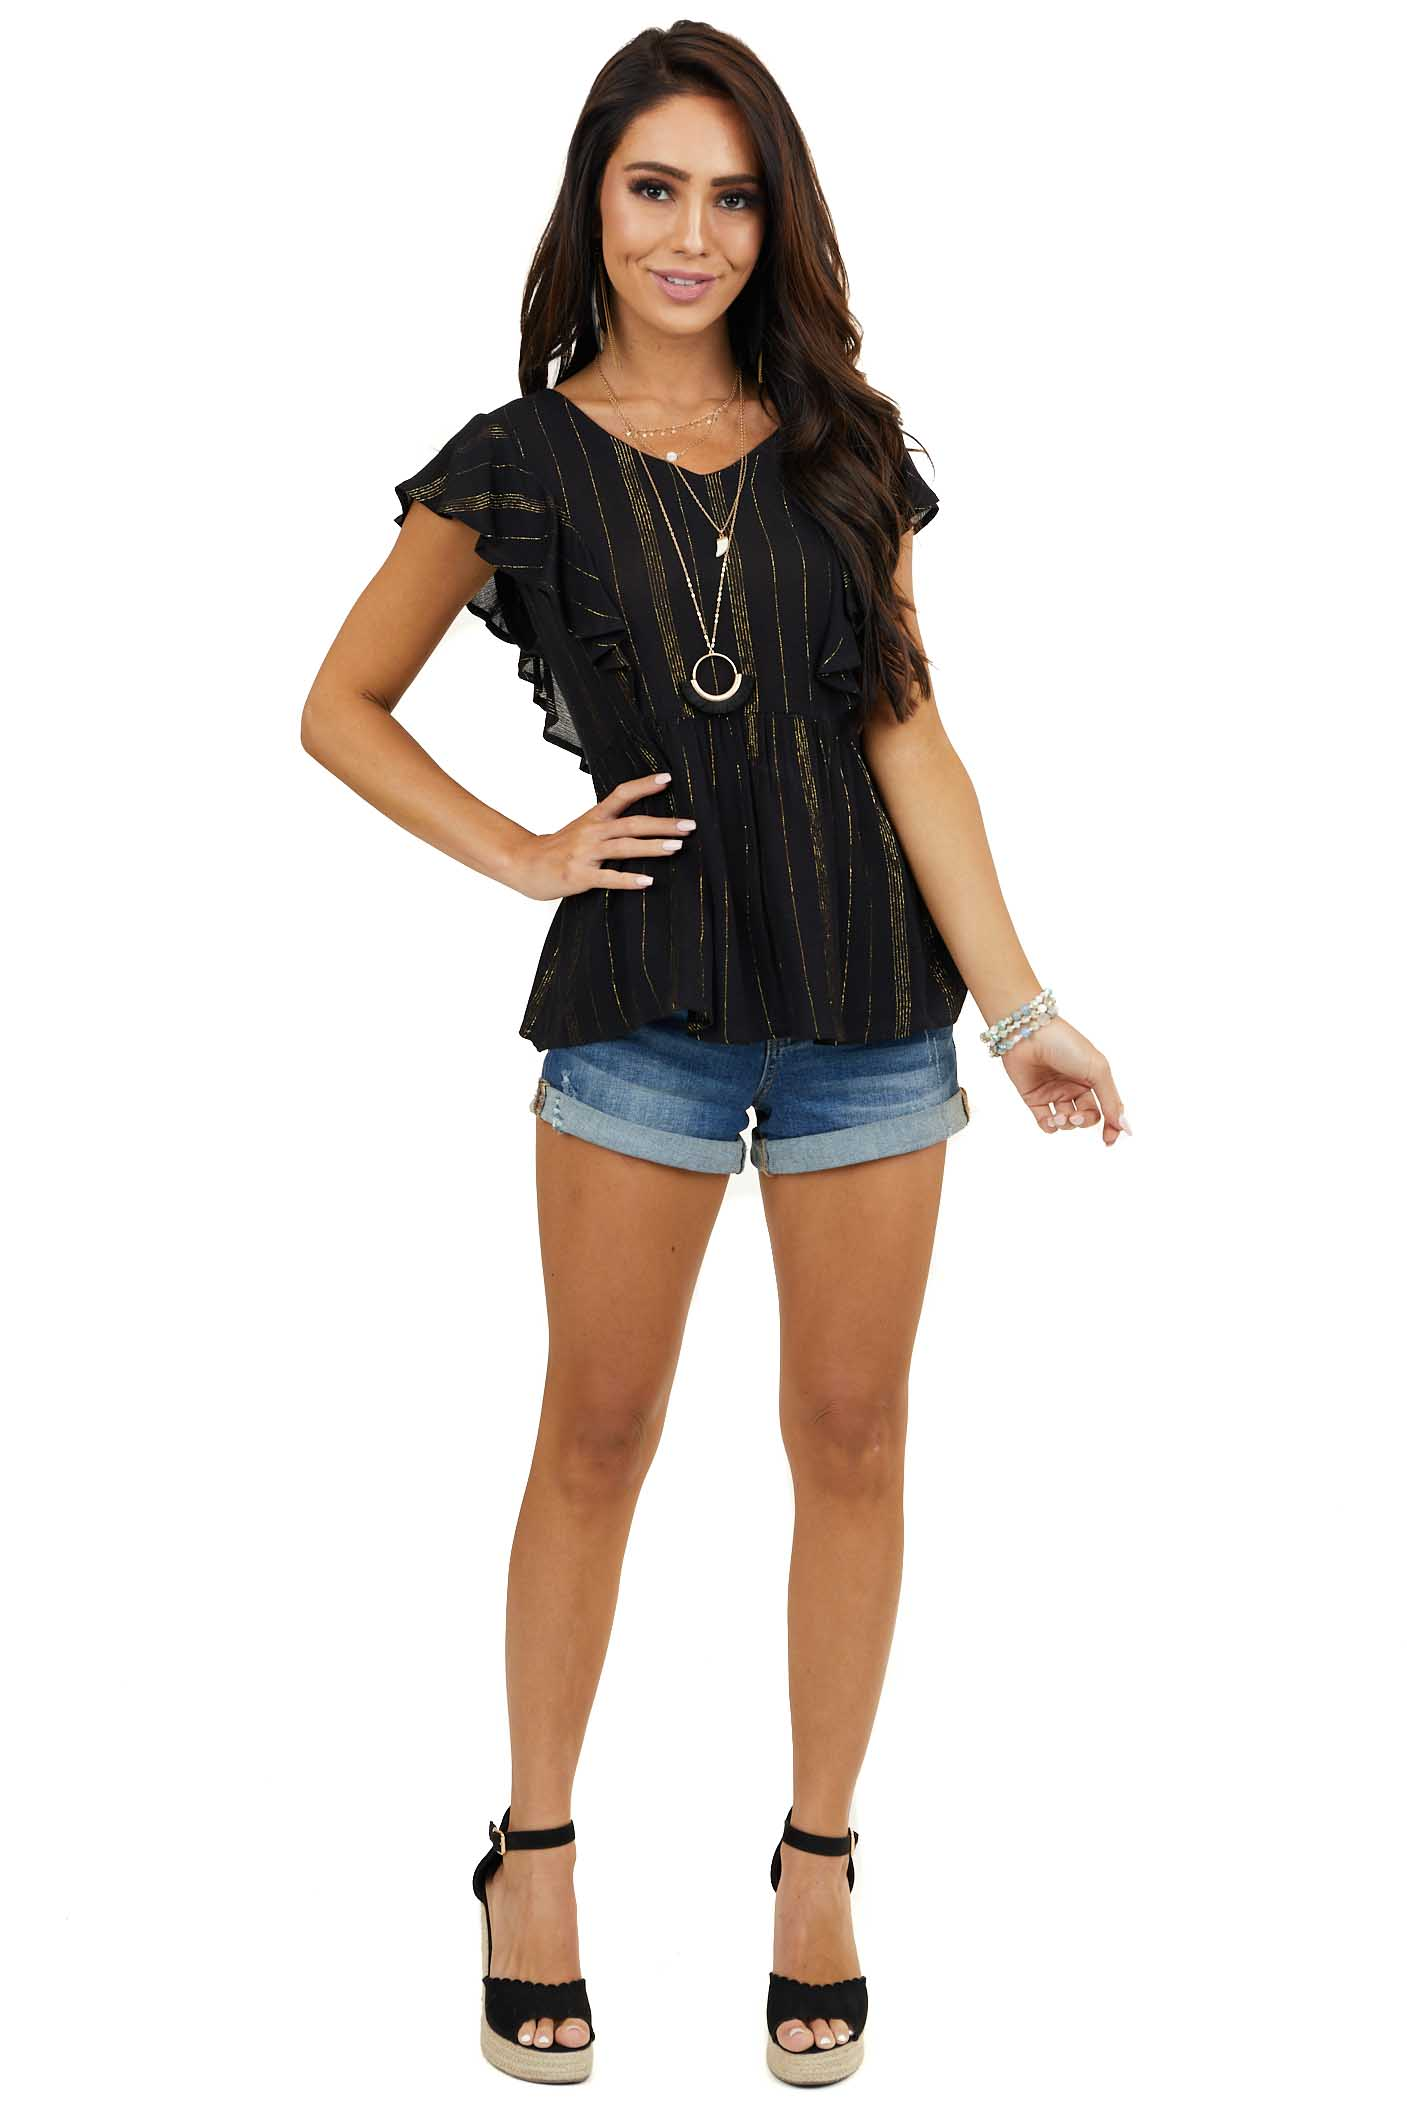 Black Short Sleeve Drop Waist V Neck Top with Gold Threading